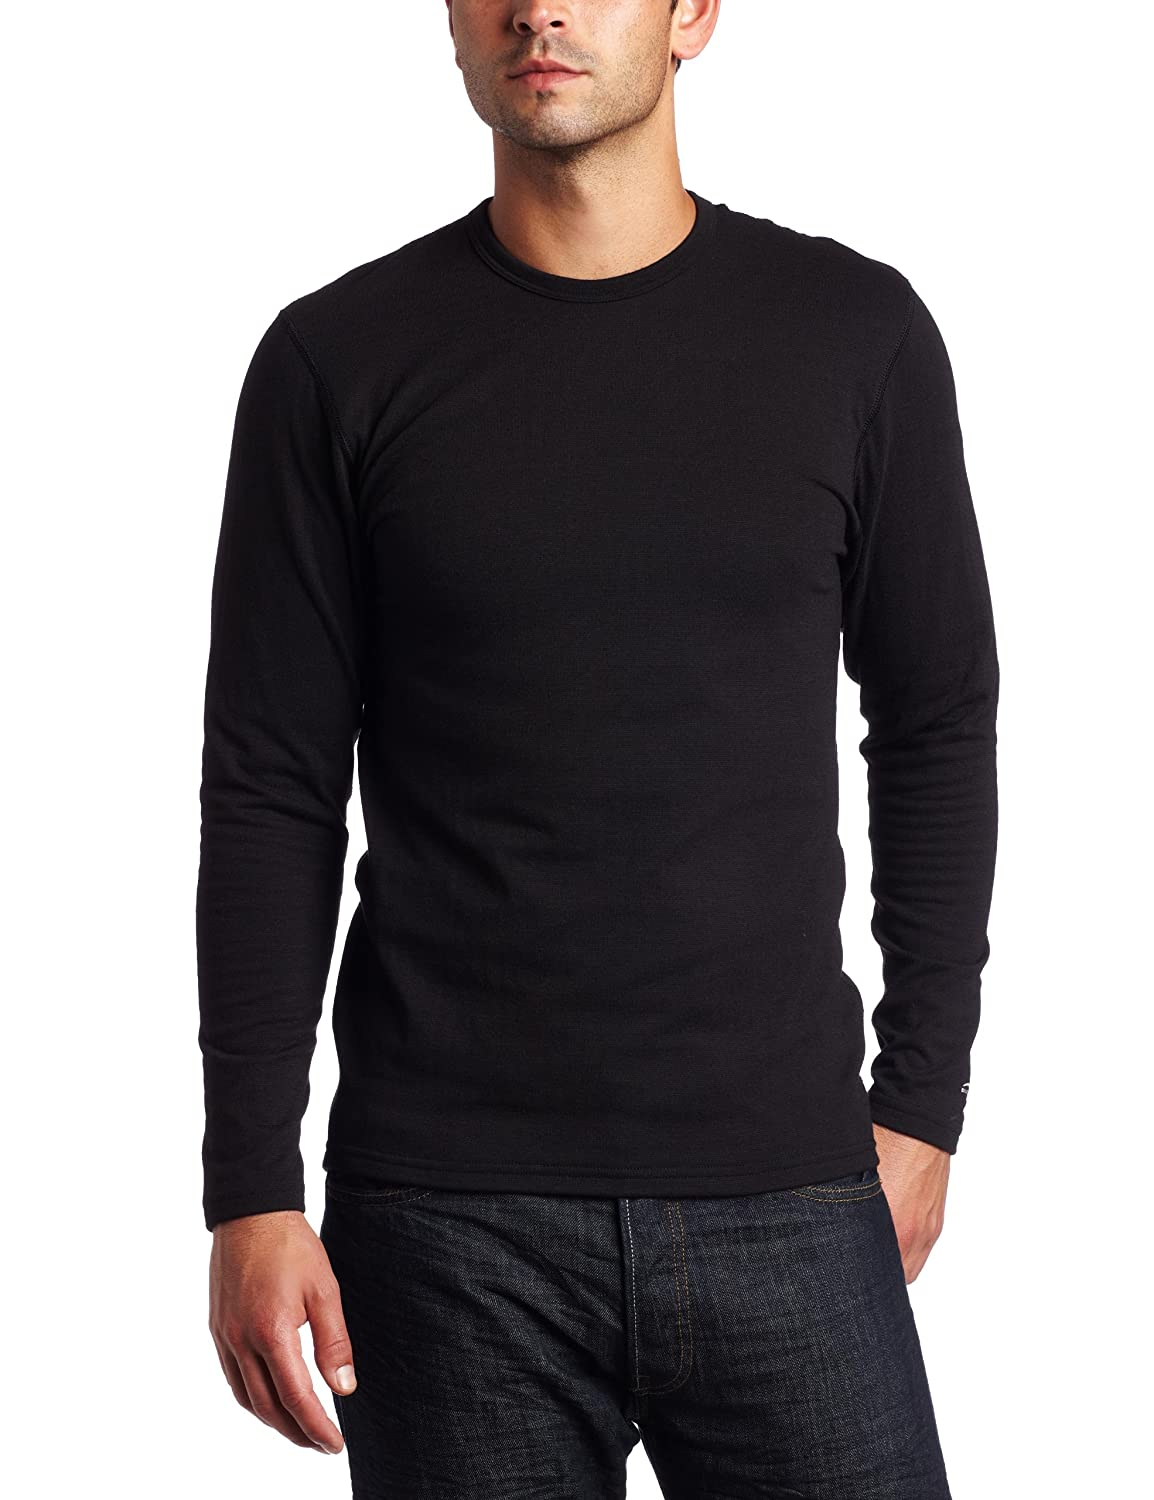 Duofold Men's Expedition Weight Two-Layer Thermal Tagless Crew Hanesbrands - Duofold 820A